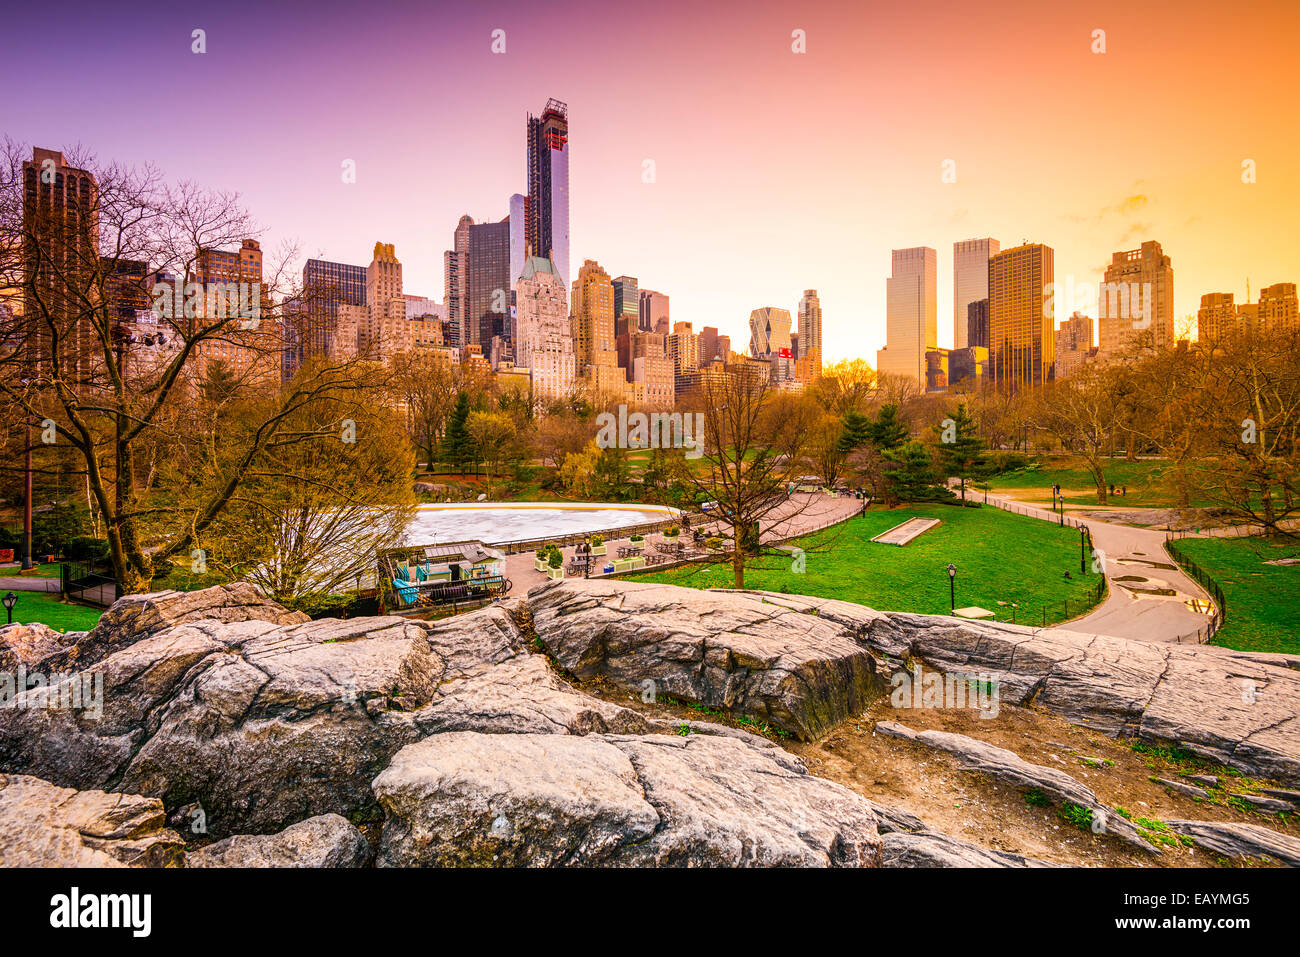 New York City cityscape view from Central Park. - Stock Image